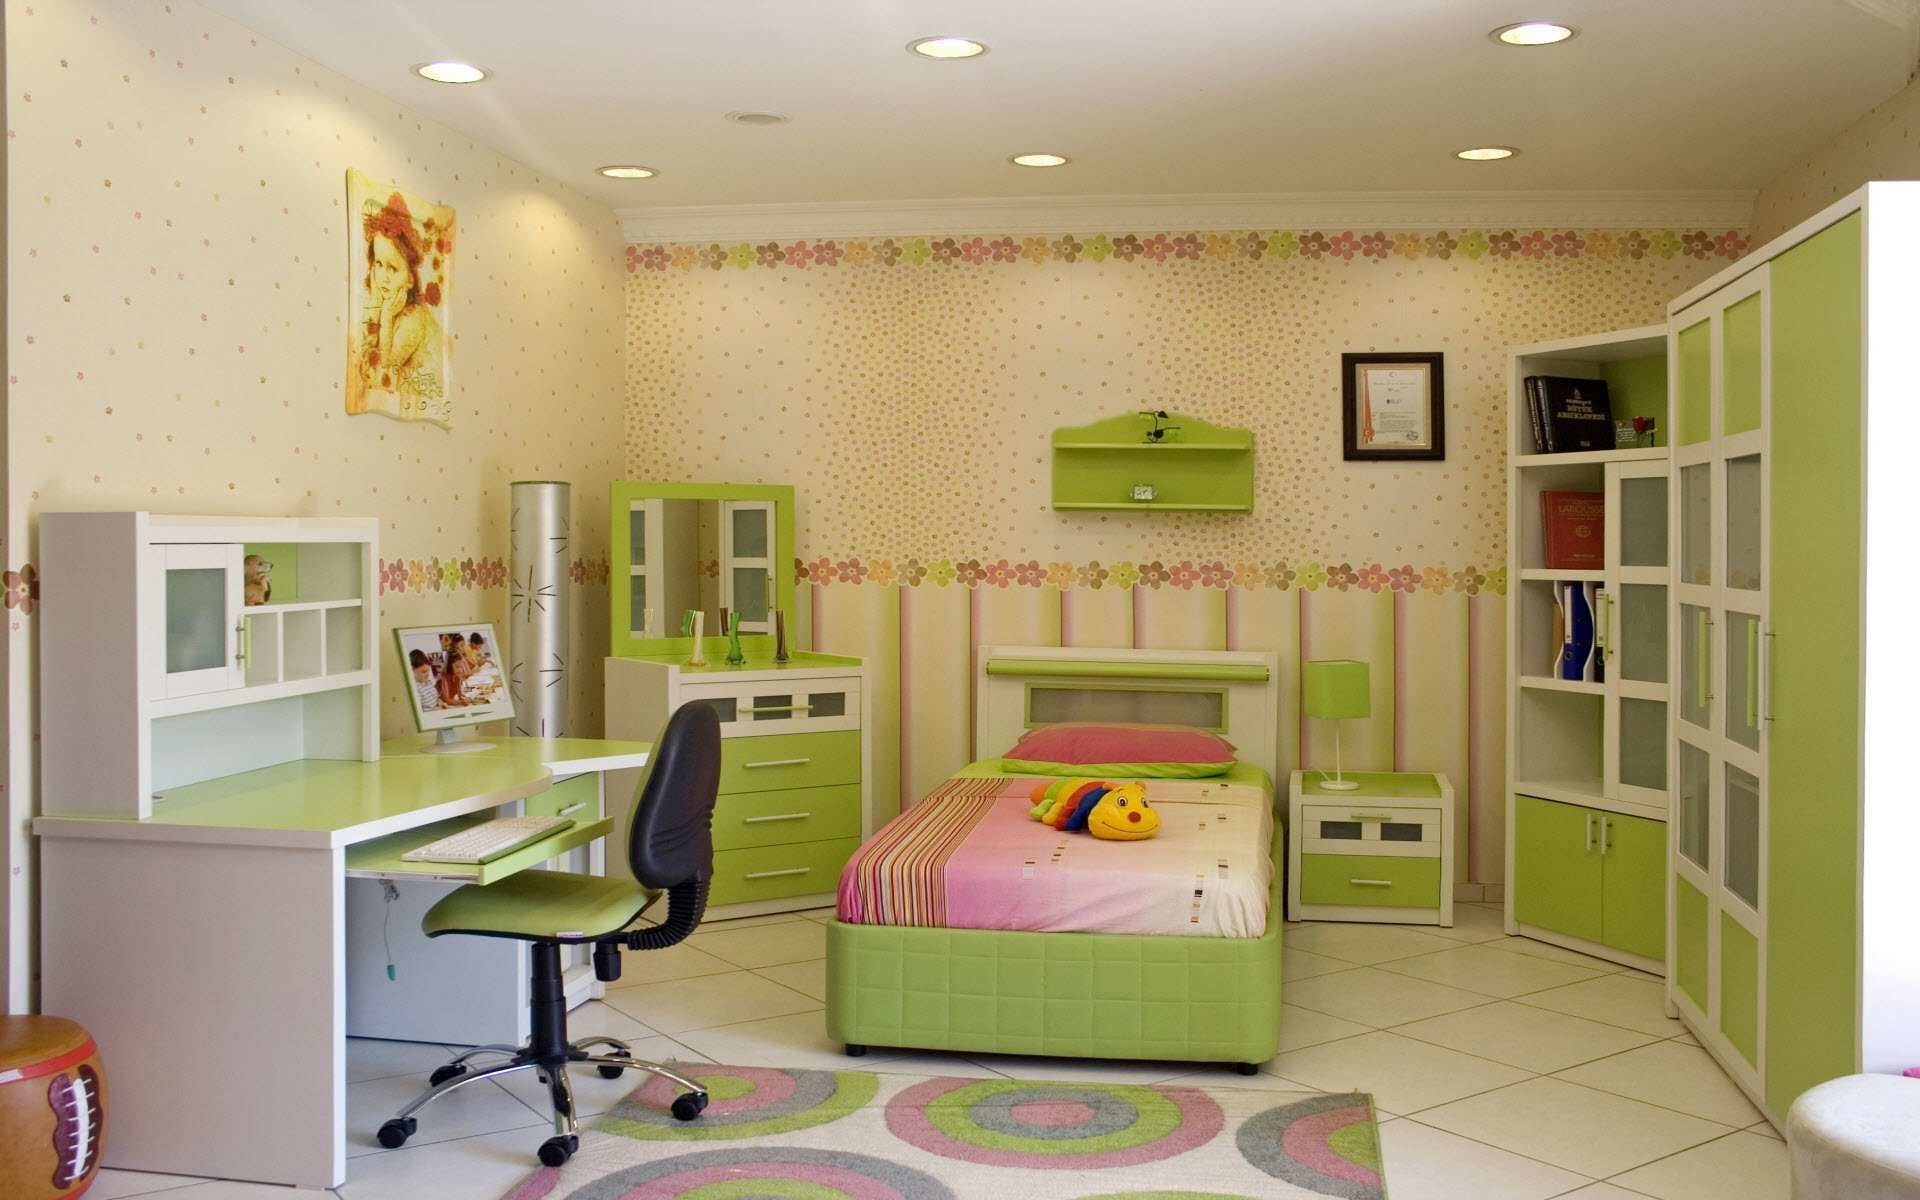 Pink And Green Home Decor Pink And Green Bedrooms Green Pink Bed Sheet Wooden Sliding White